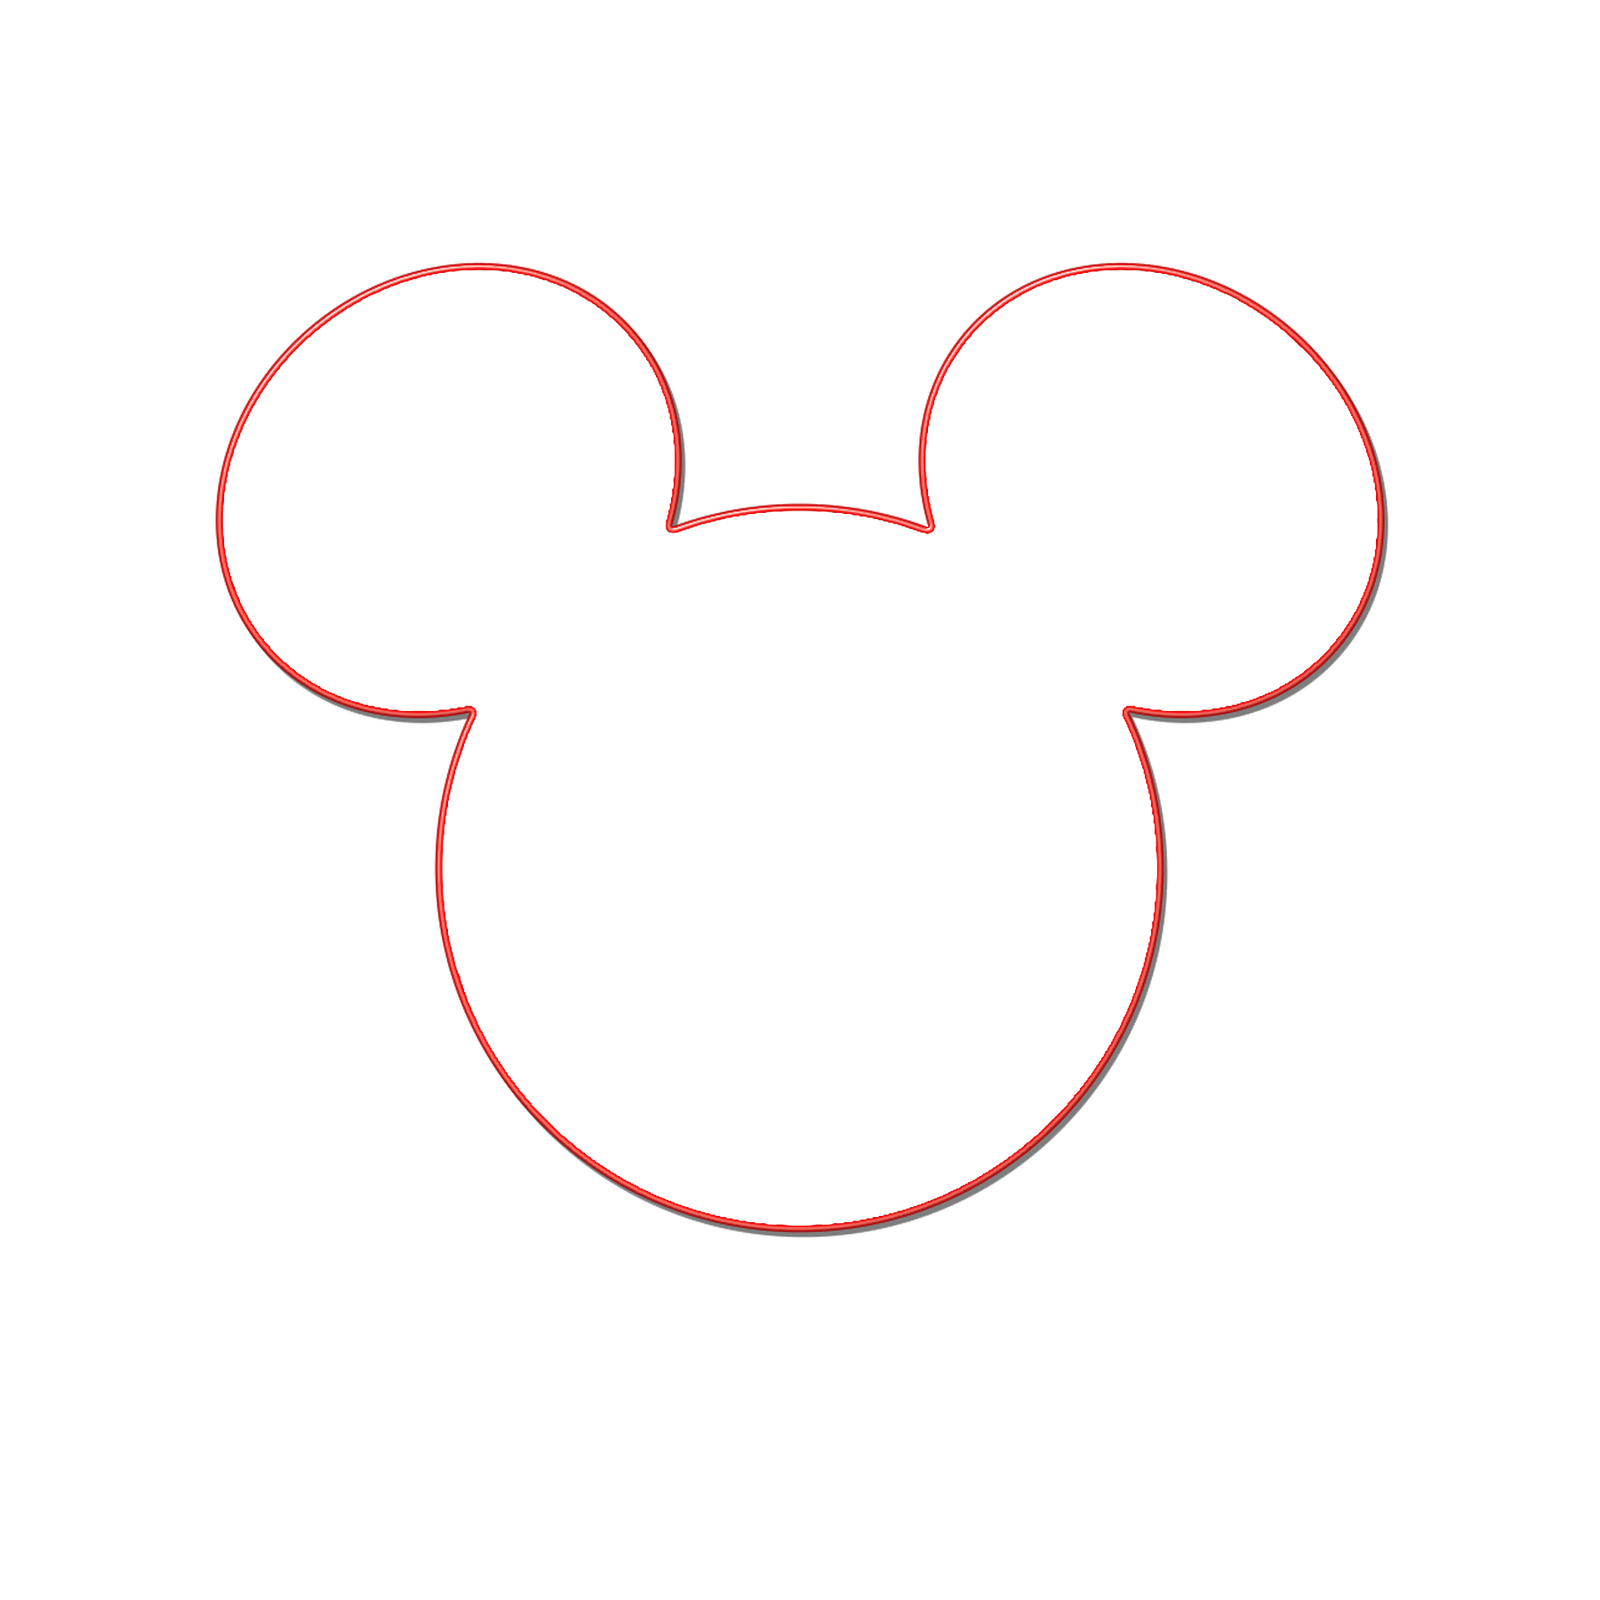 Minnie Mouse Body Template